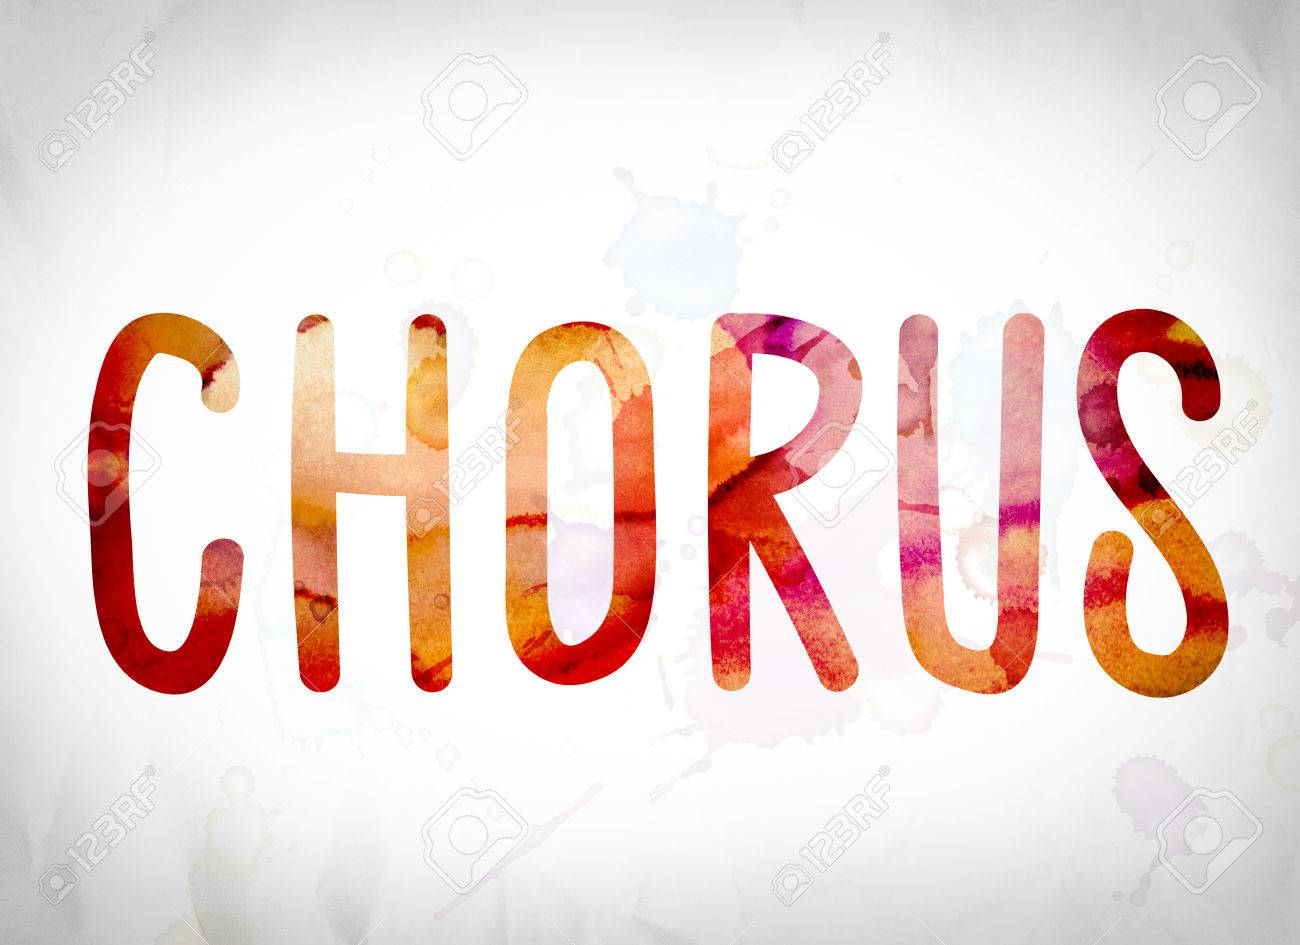 Image result for Chorus